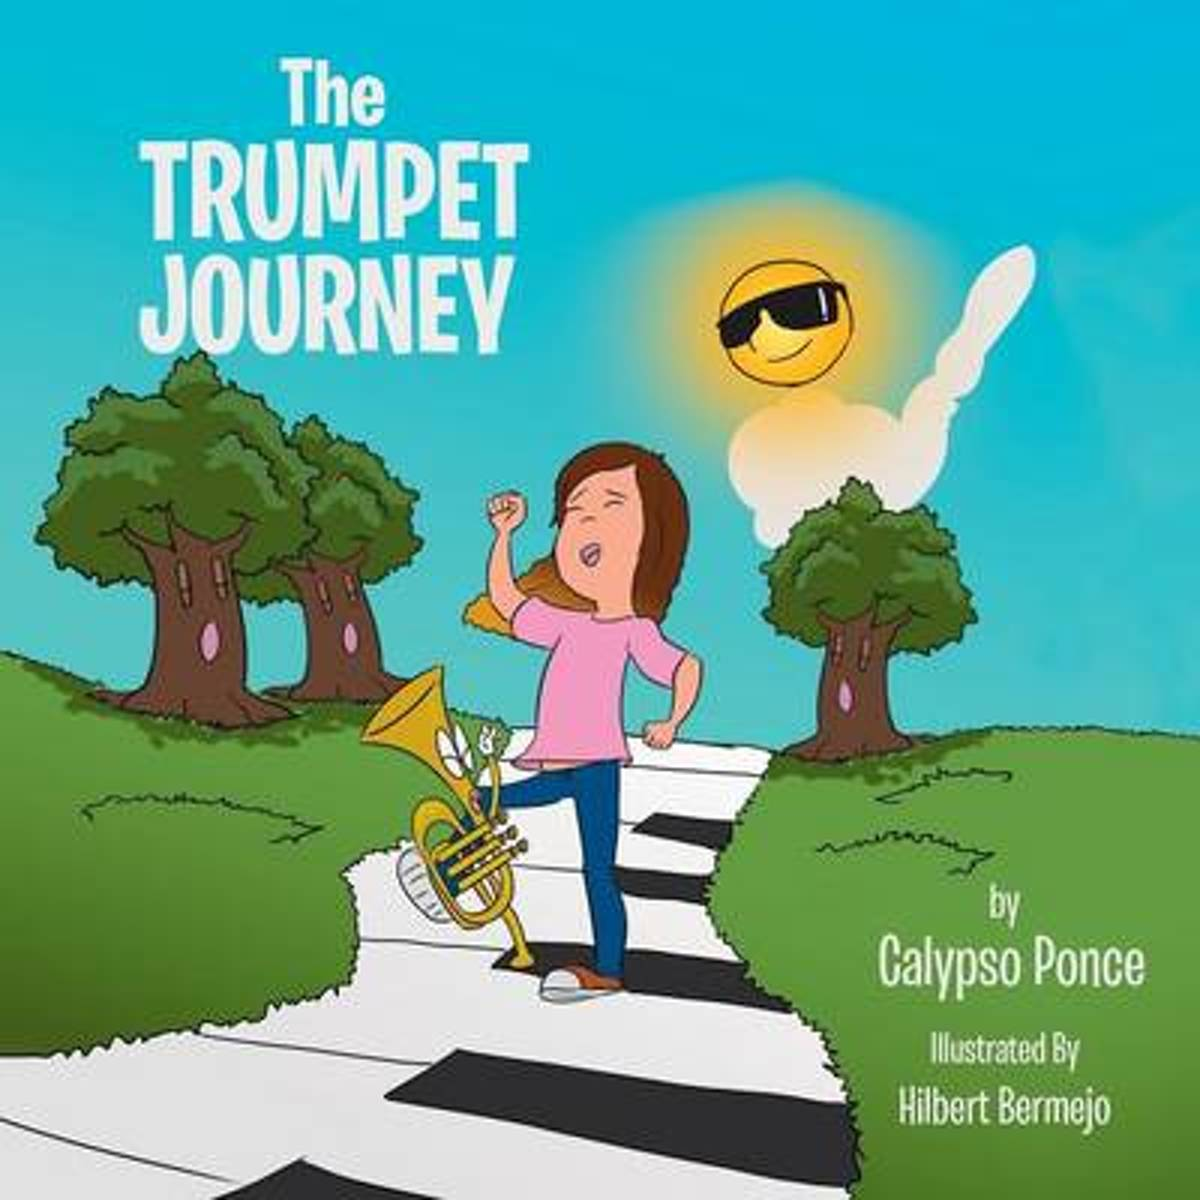 The Trumpet Journey image